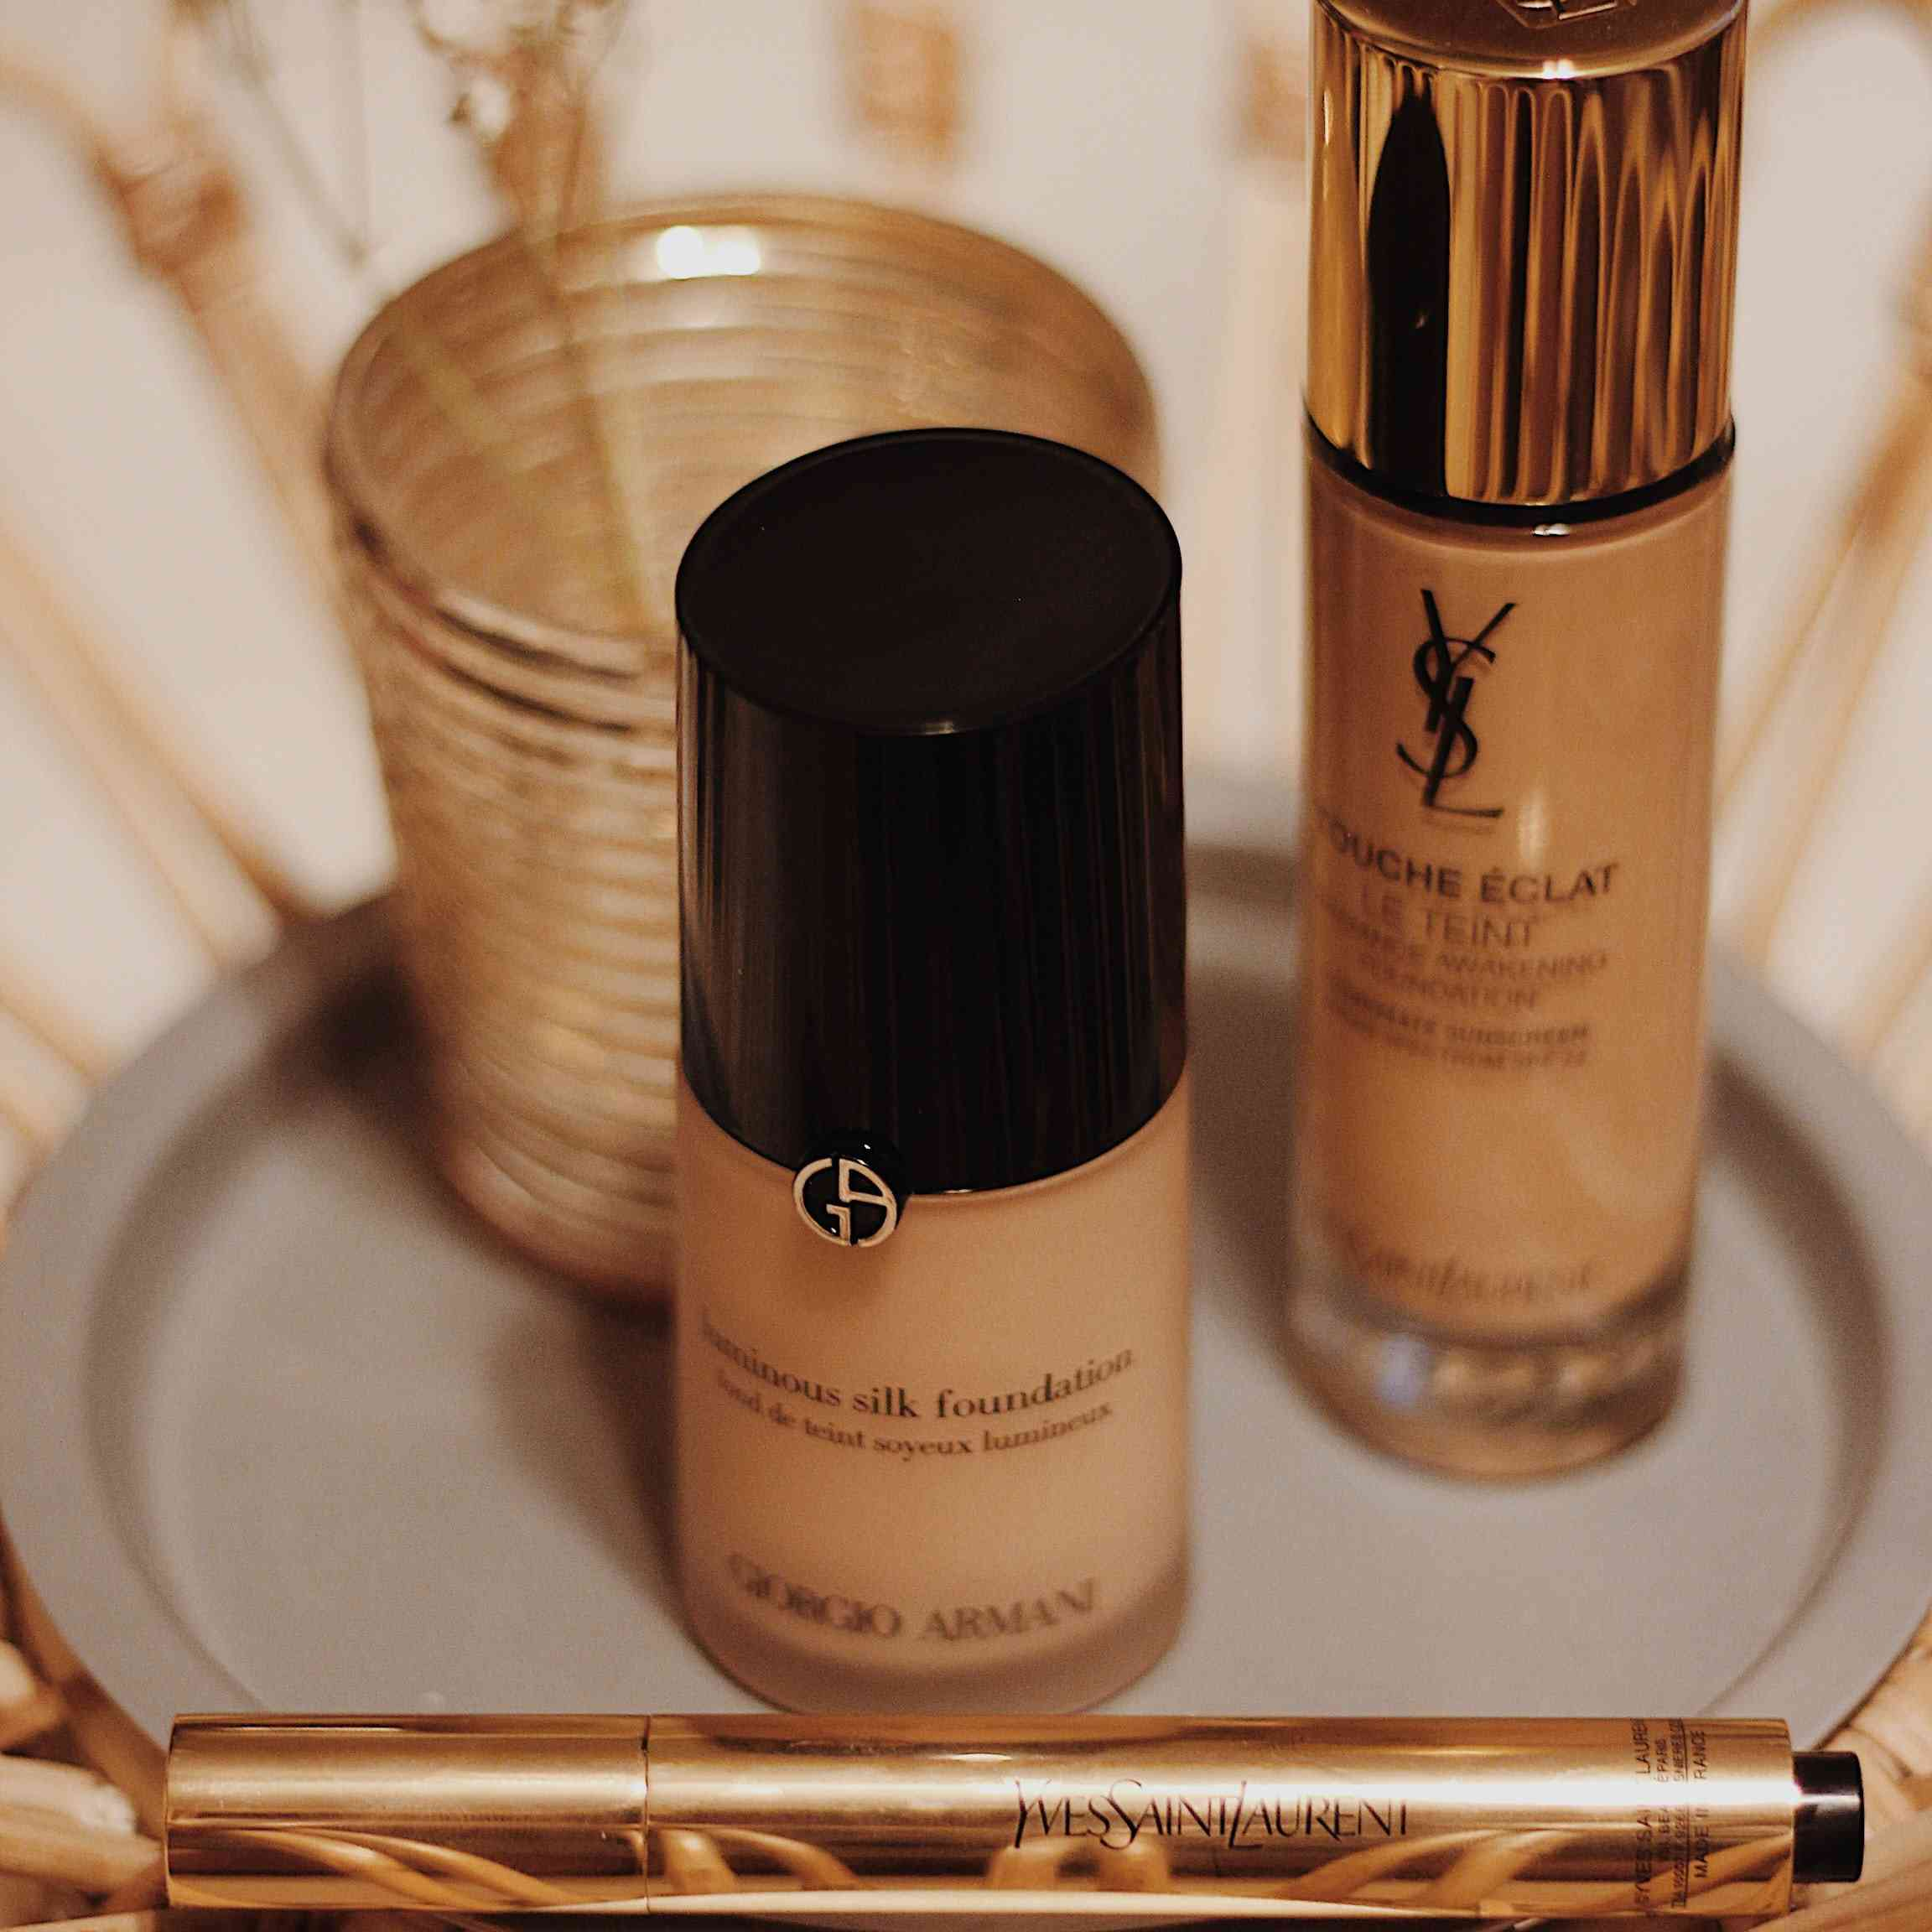 Picture of foundations on vanity